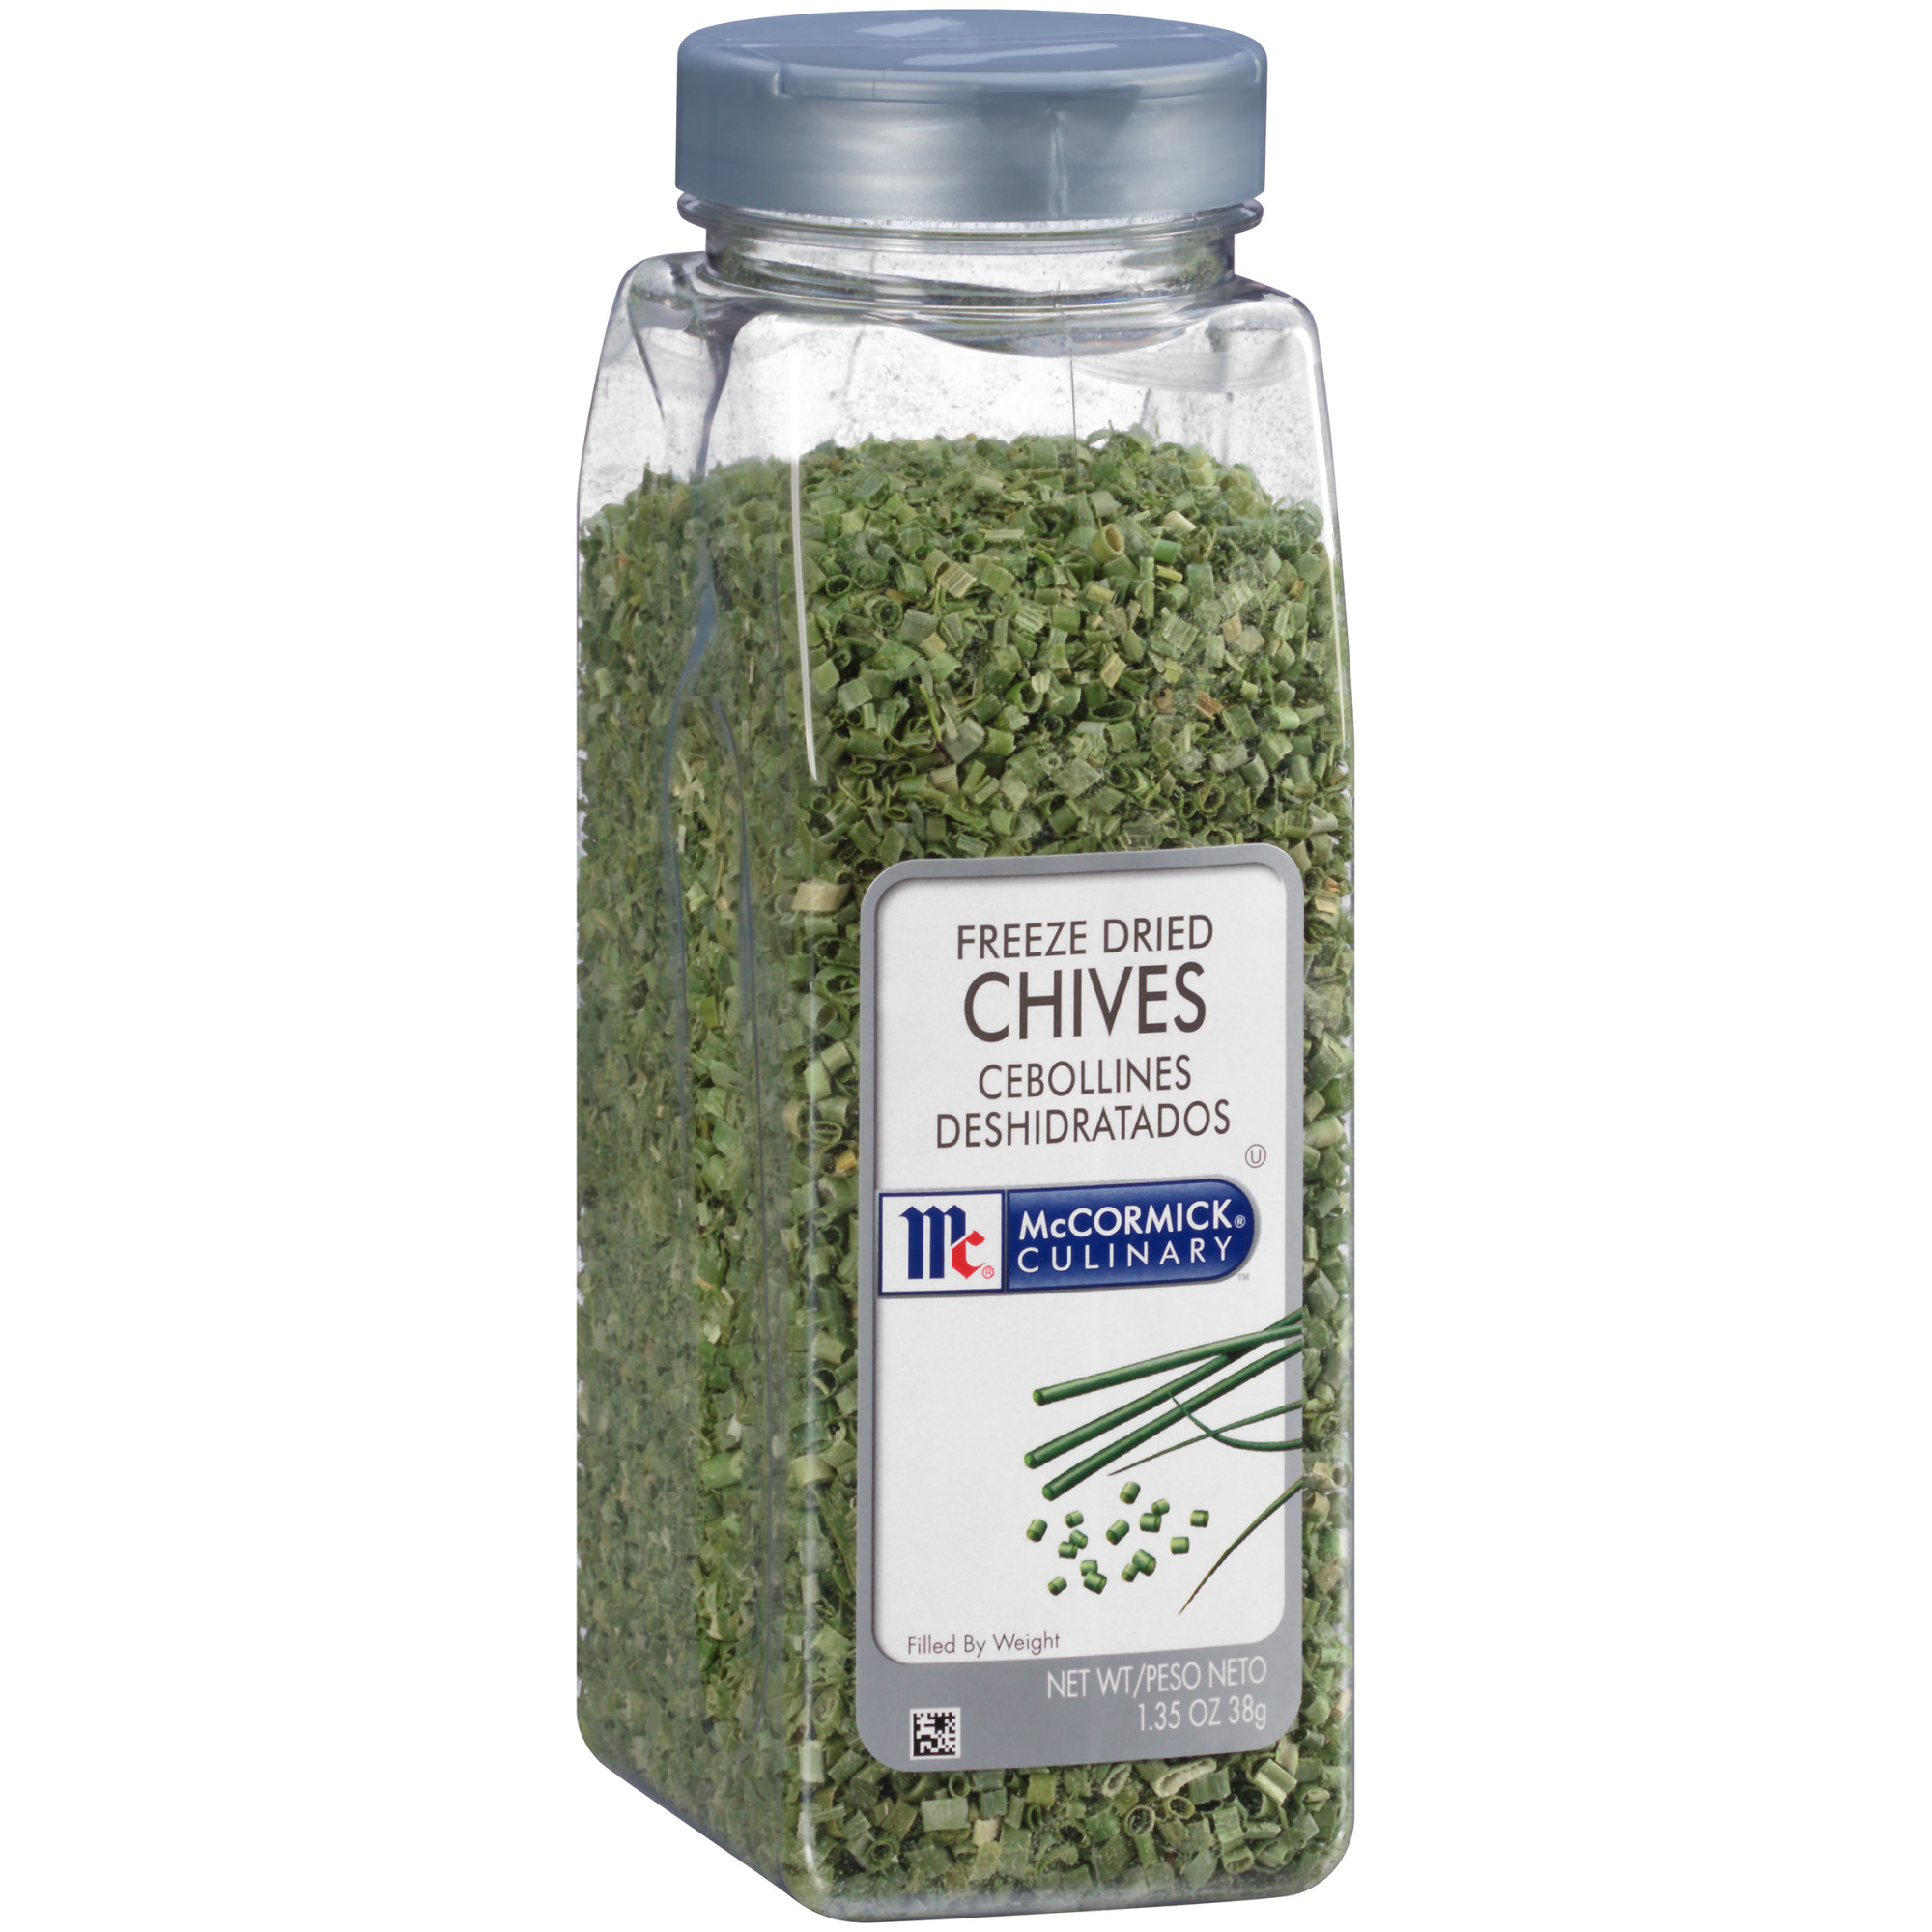 McCormick Culinary Freeze Dried Chives, 1.35 oz